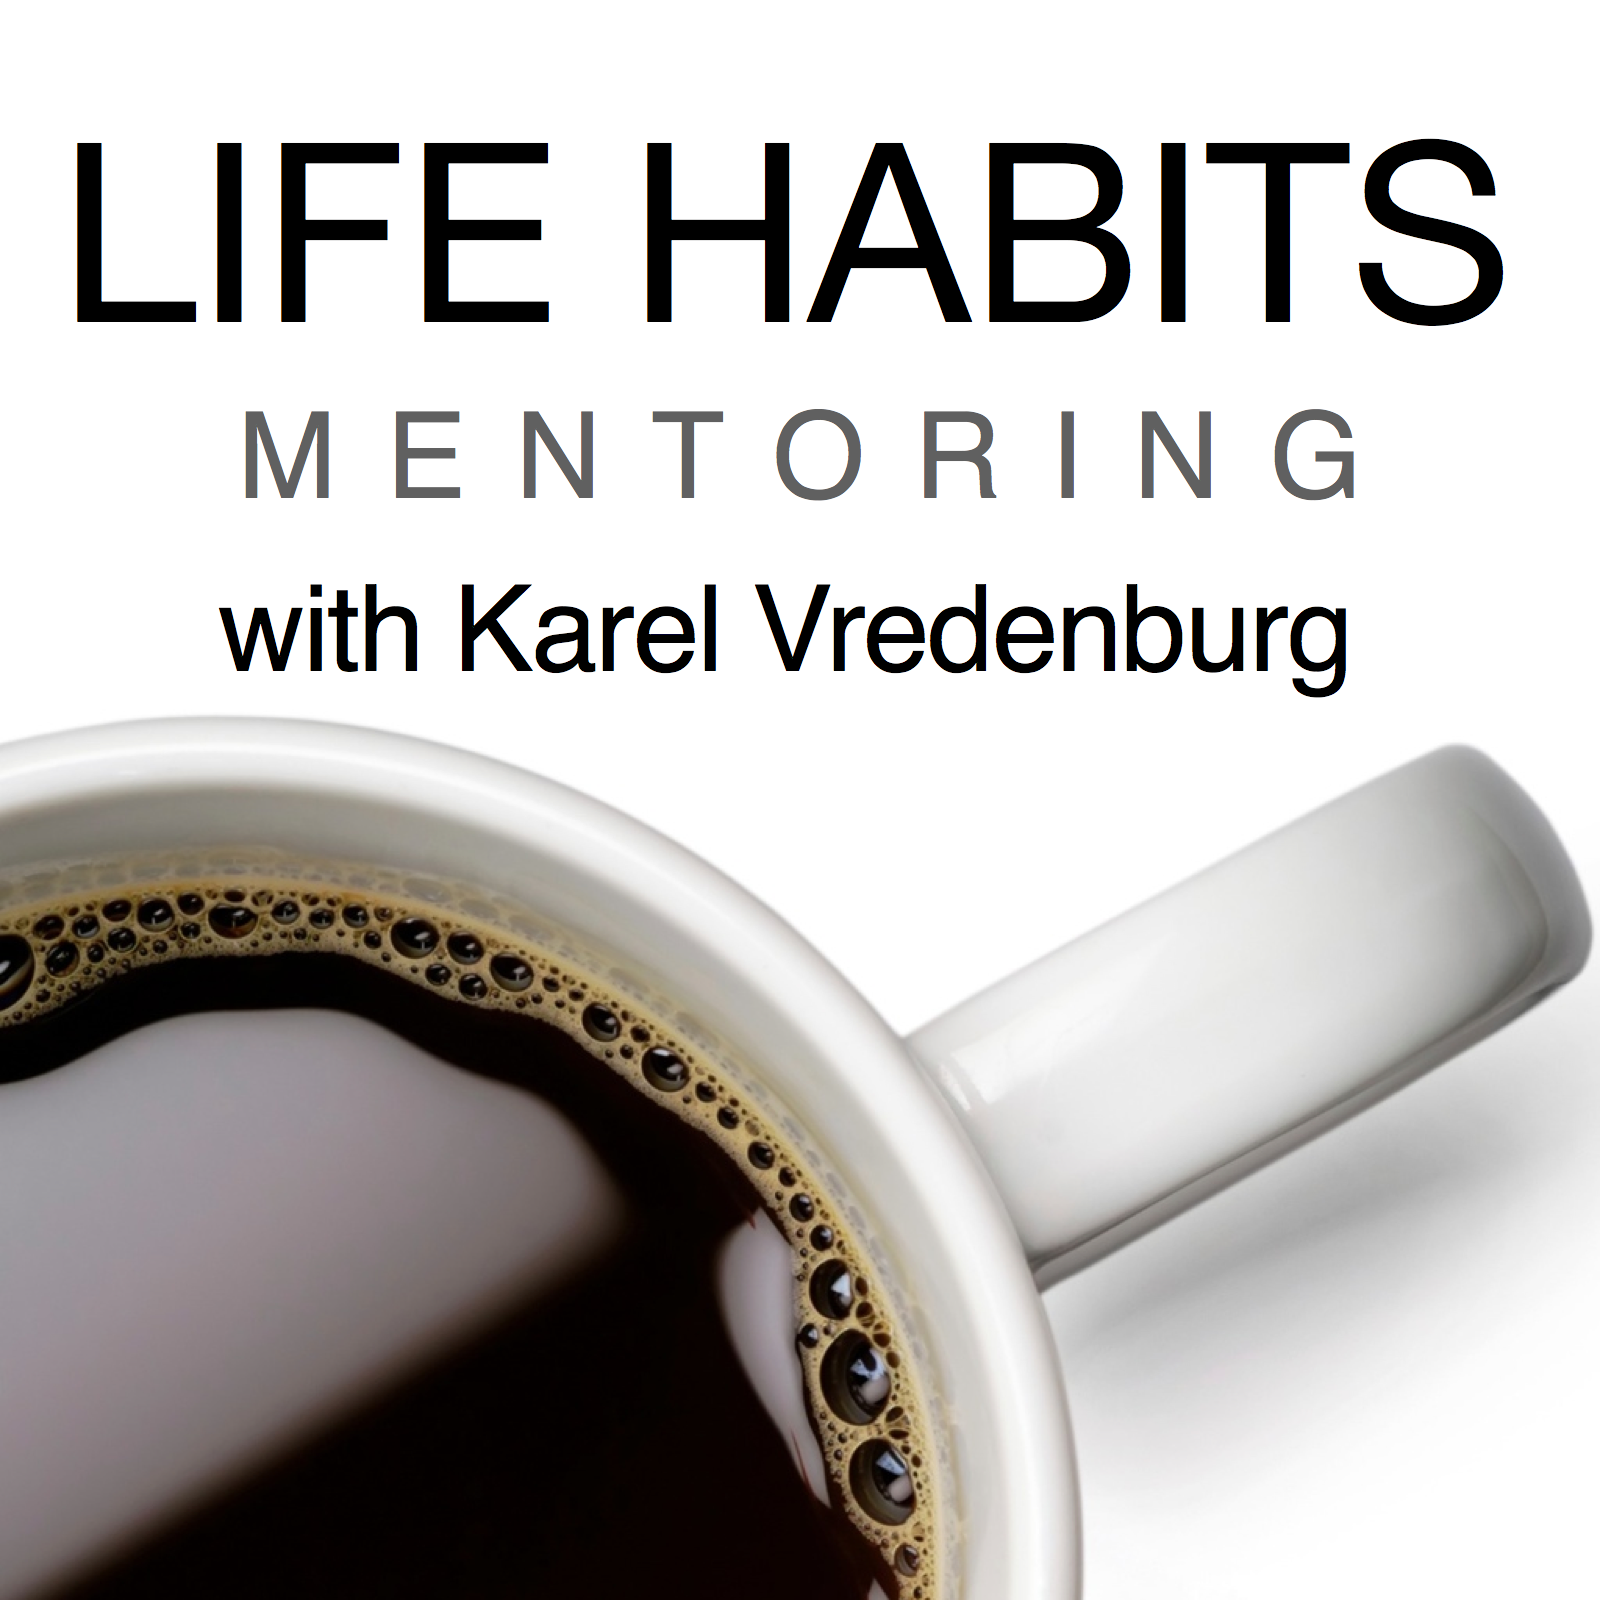 Learn new habits to optimize your life in order to stay sane in this crazy world.